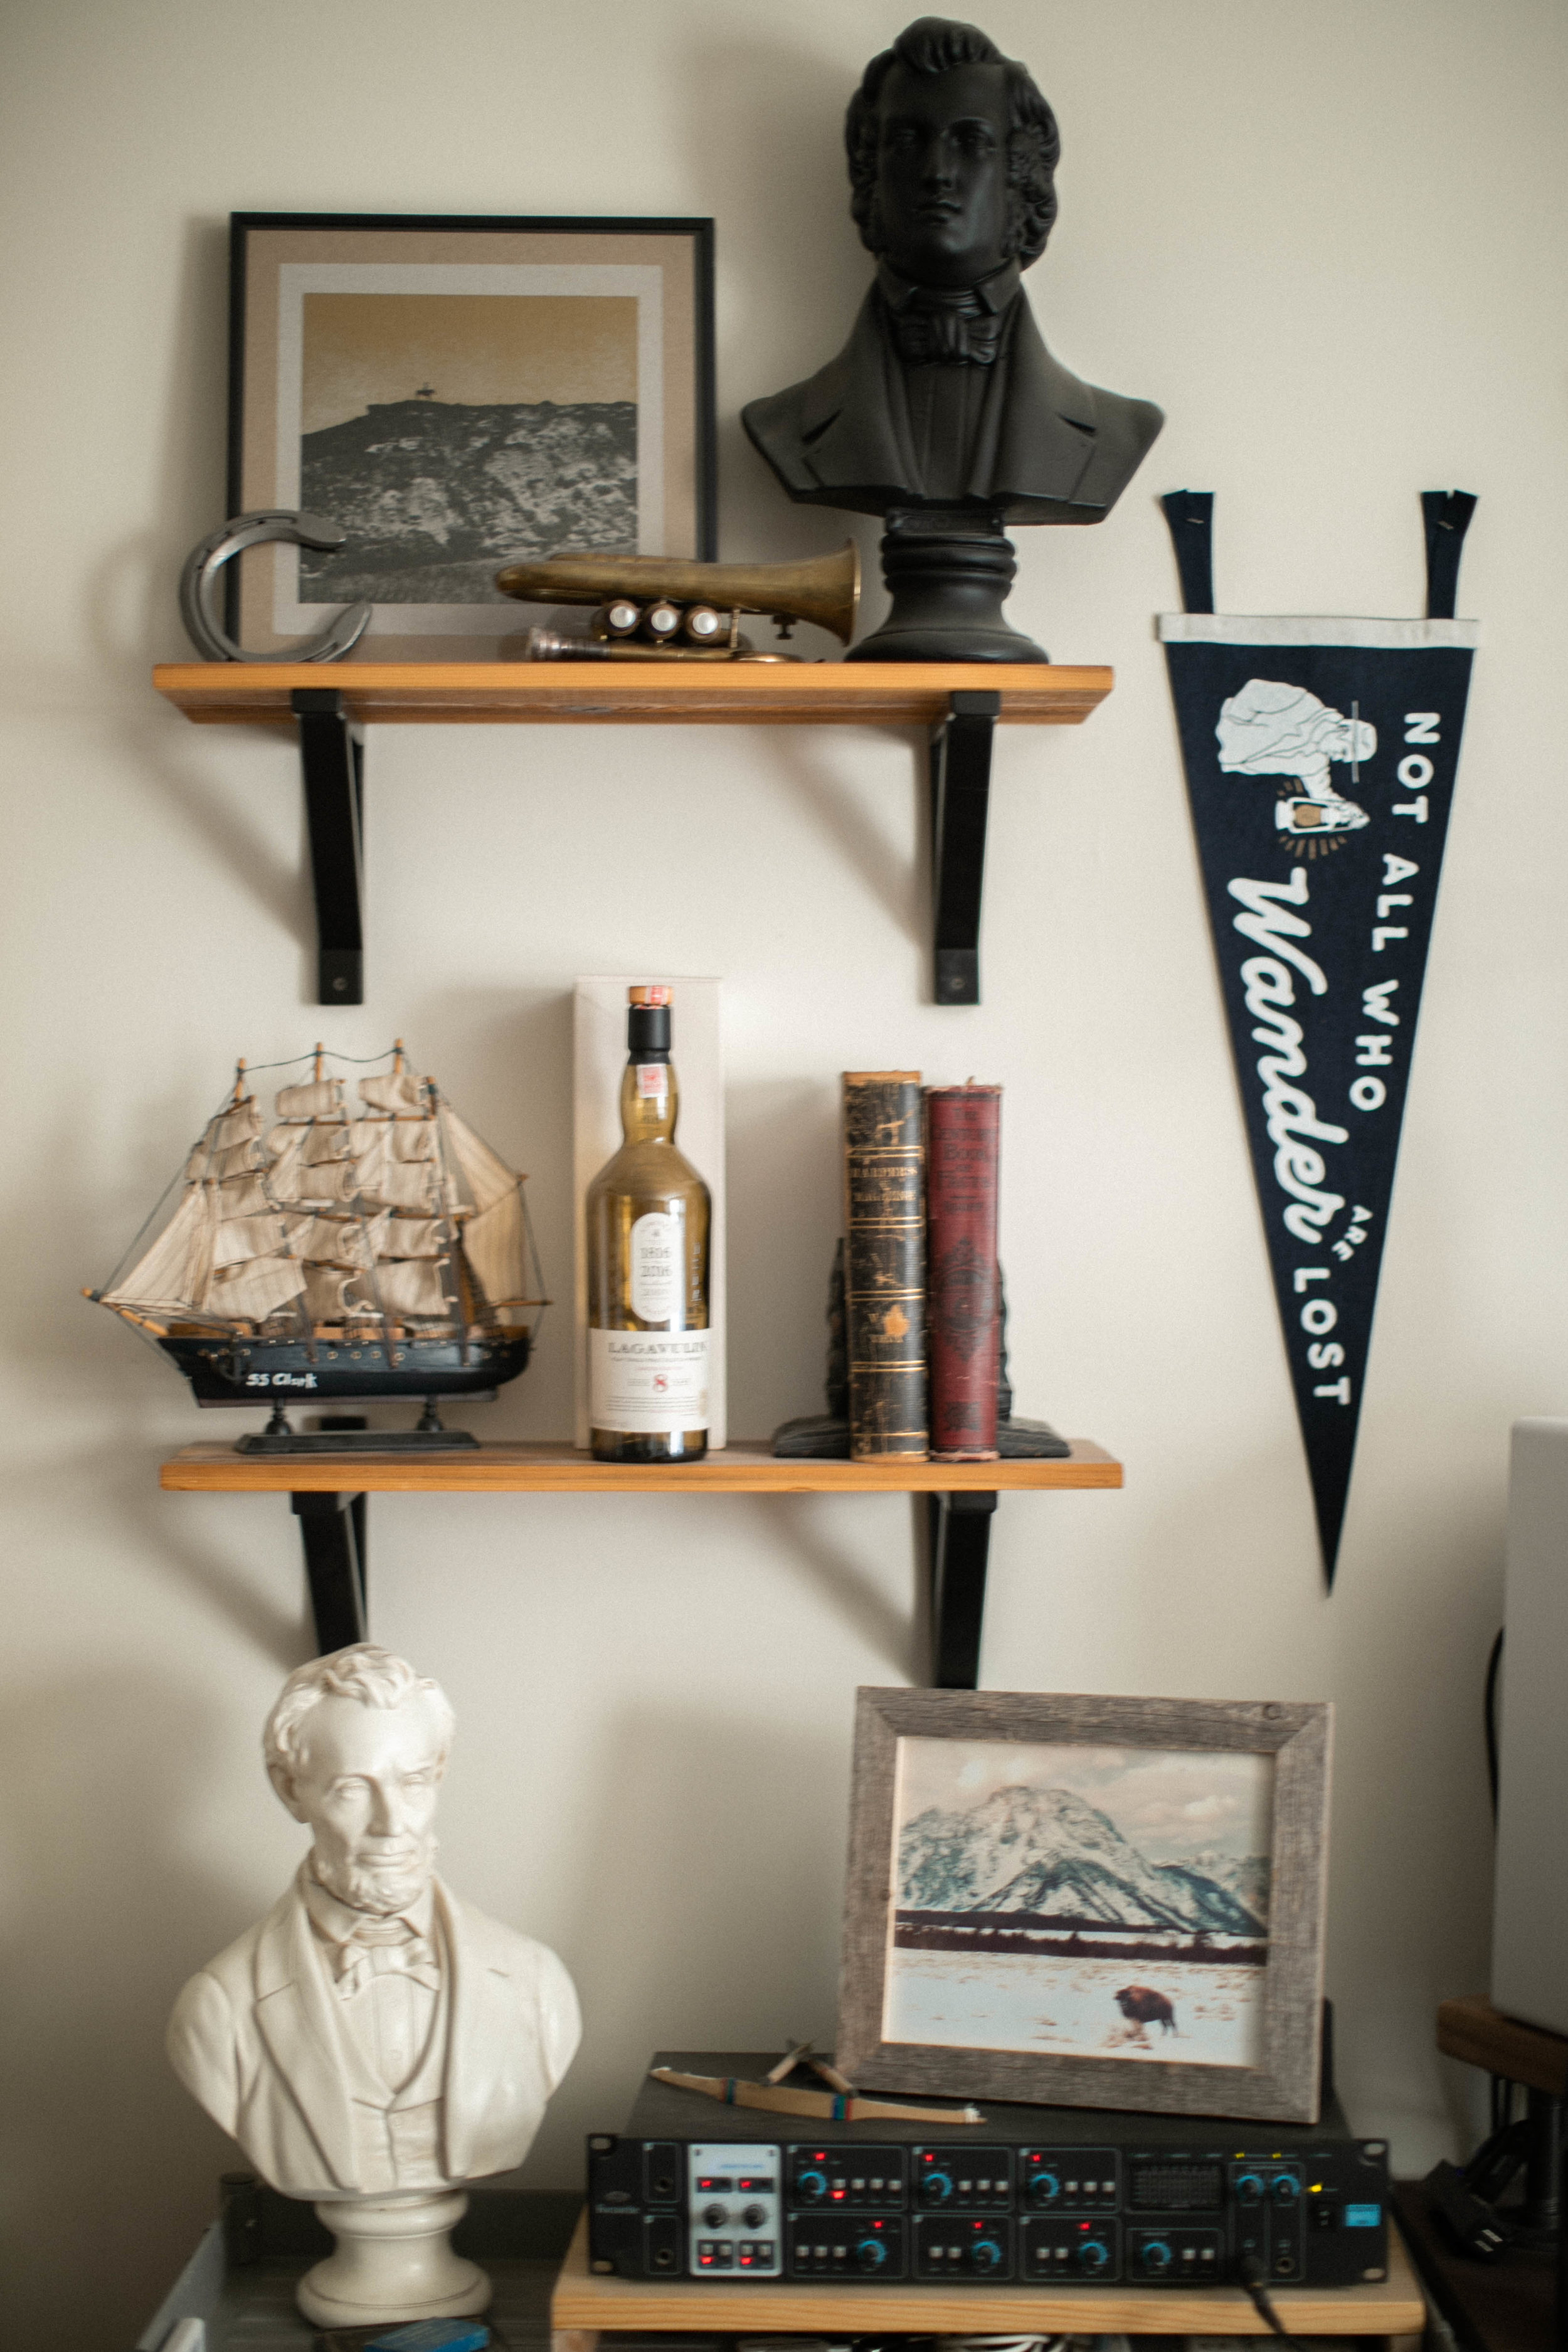 Curation of collected objects on home shelving